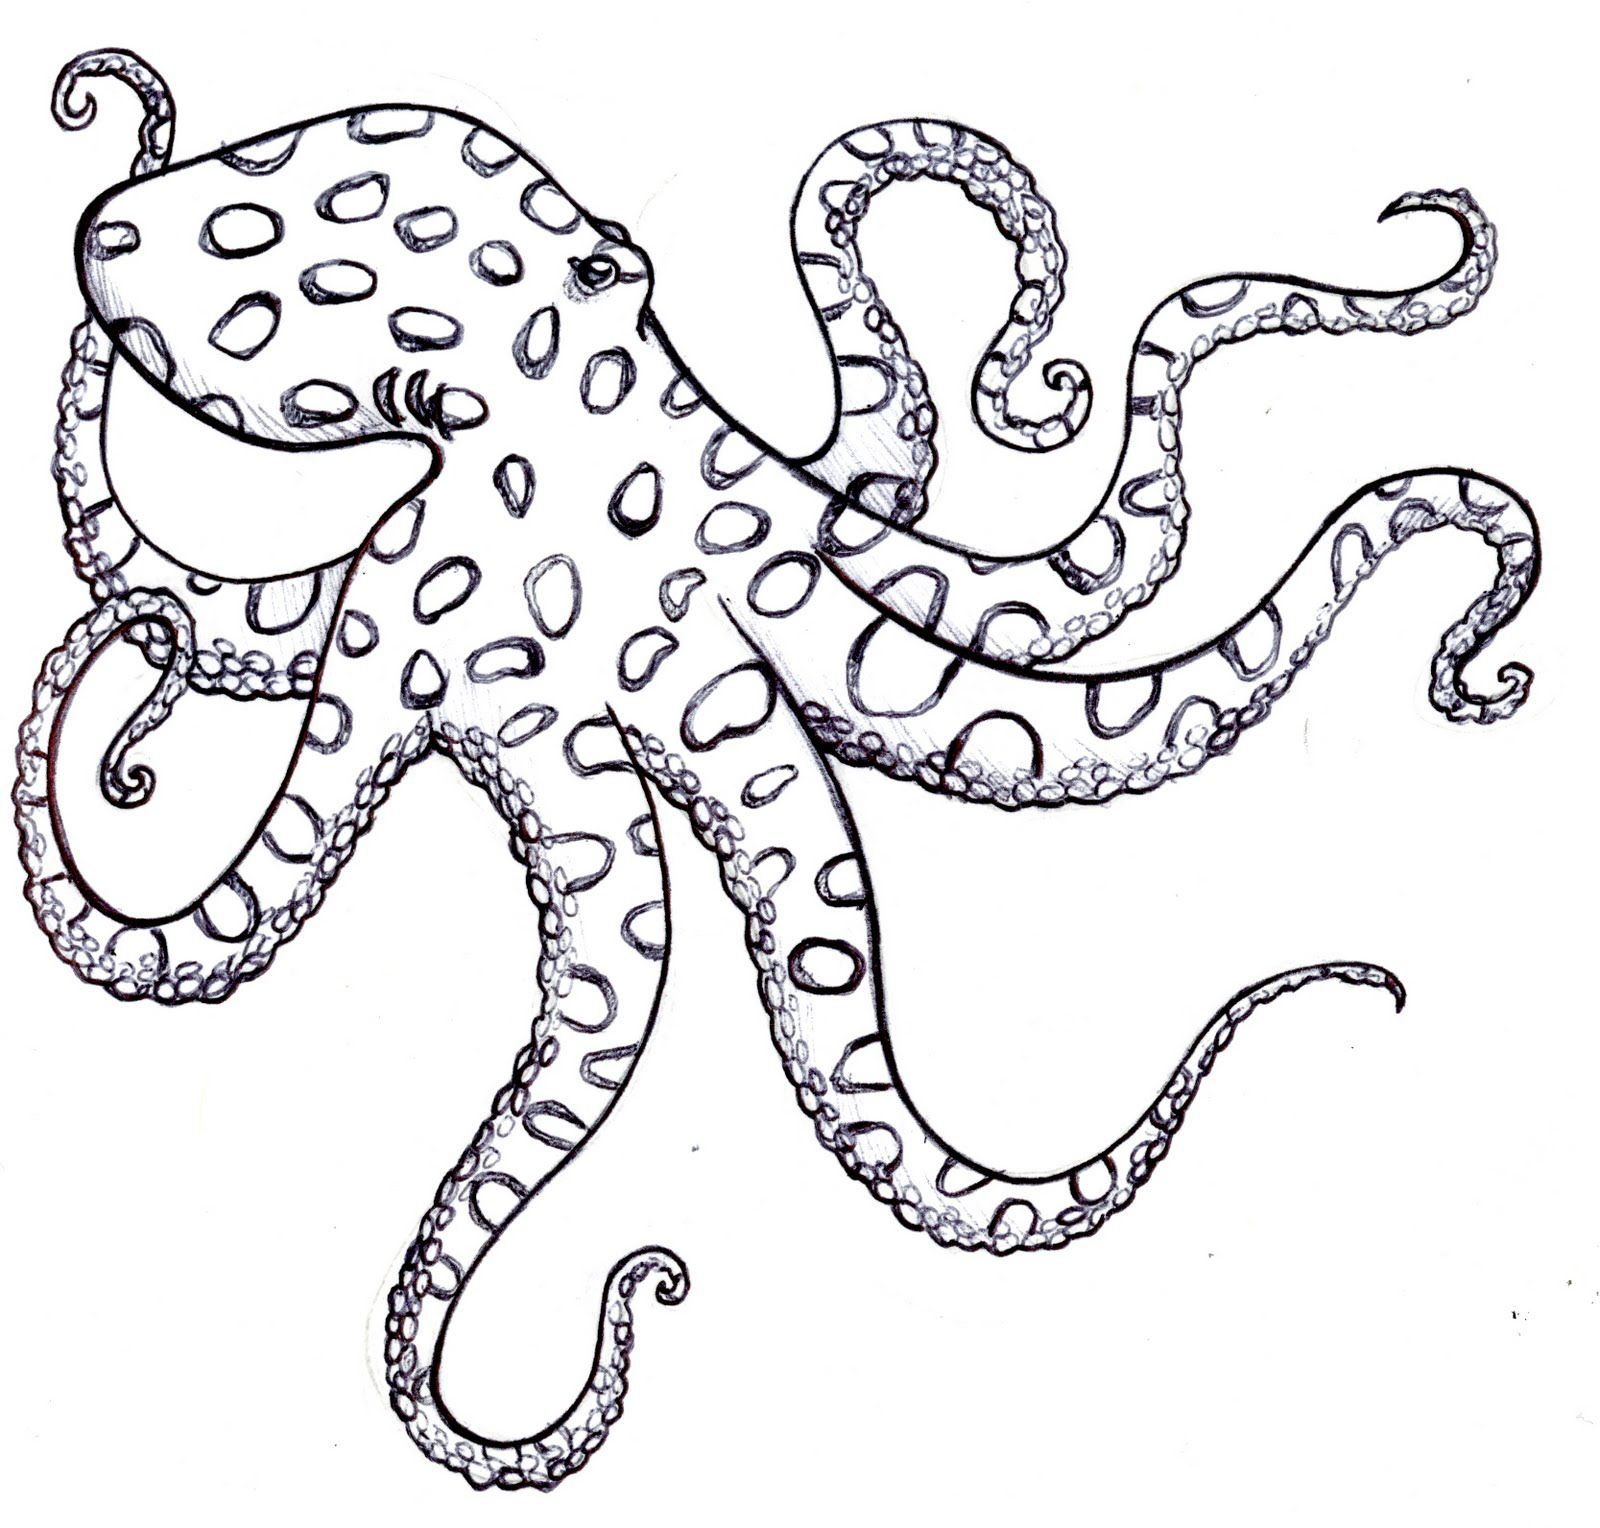 Black And White Octopus Drawing